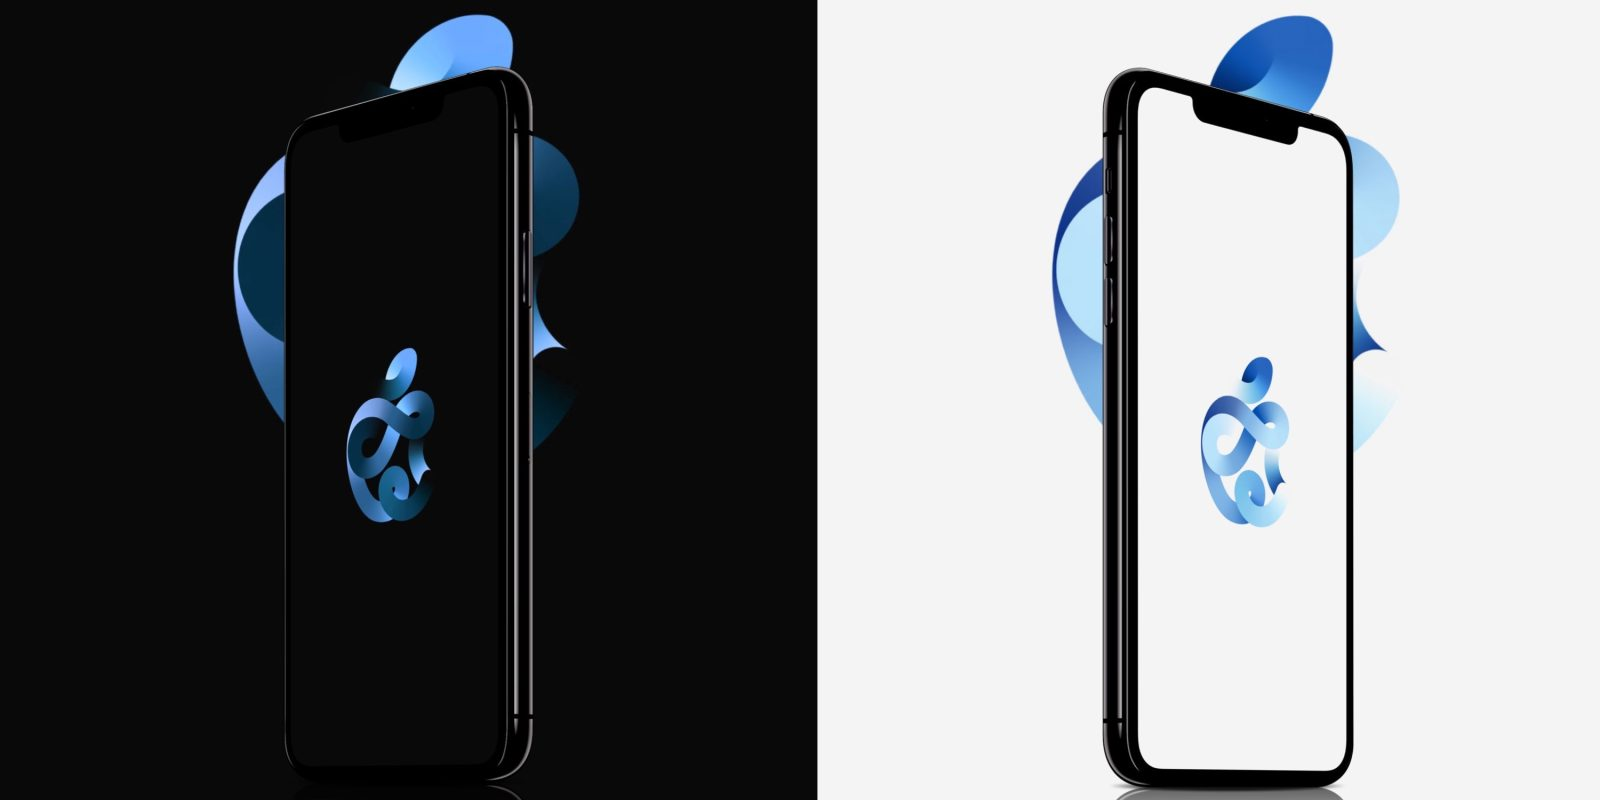 Download These Apple September Event Inspired Iphone Wallpapers 9to5mac